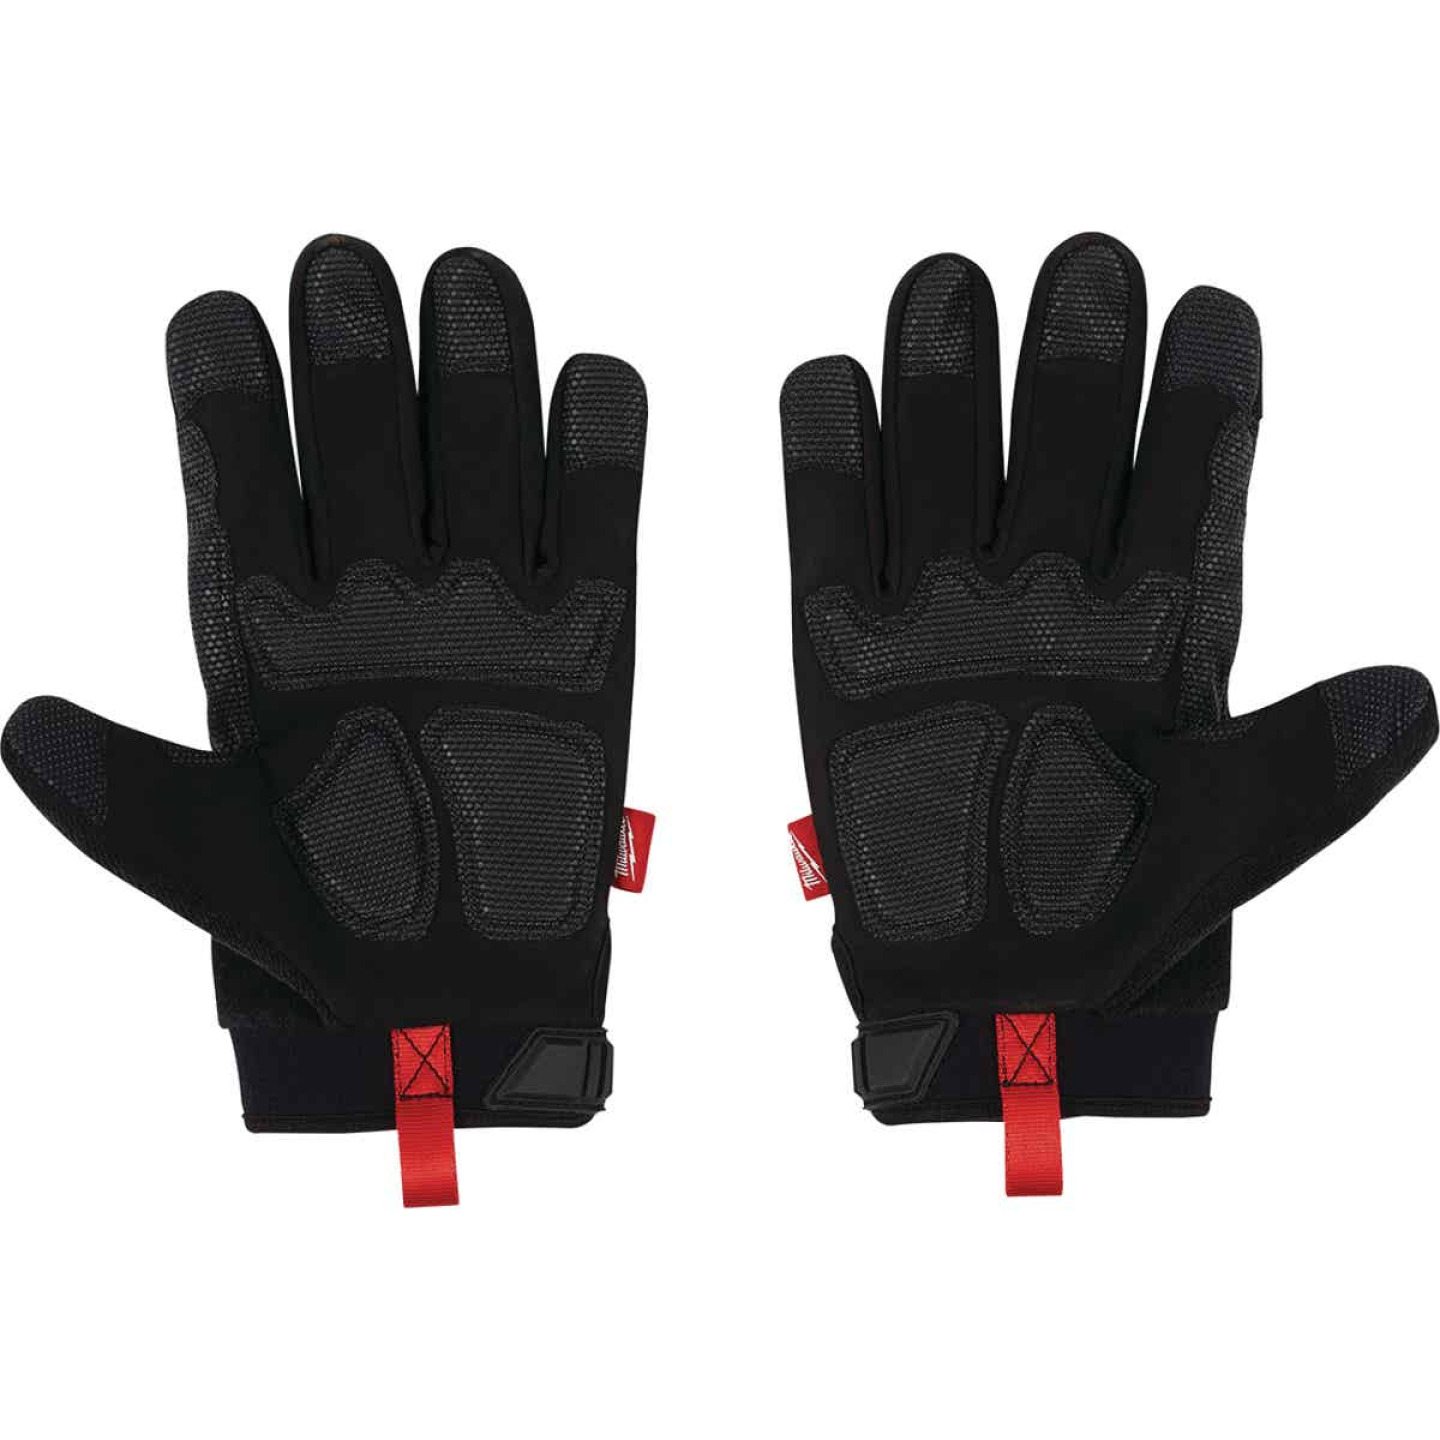 Milwaukee Men's Large Synthetic Leather Impact Demolition Glove Image 2